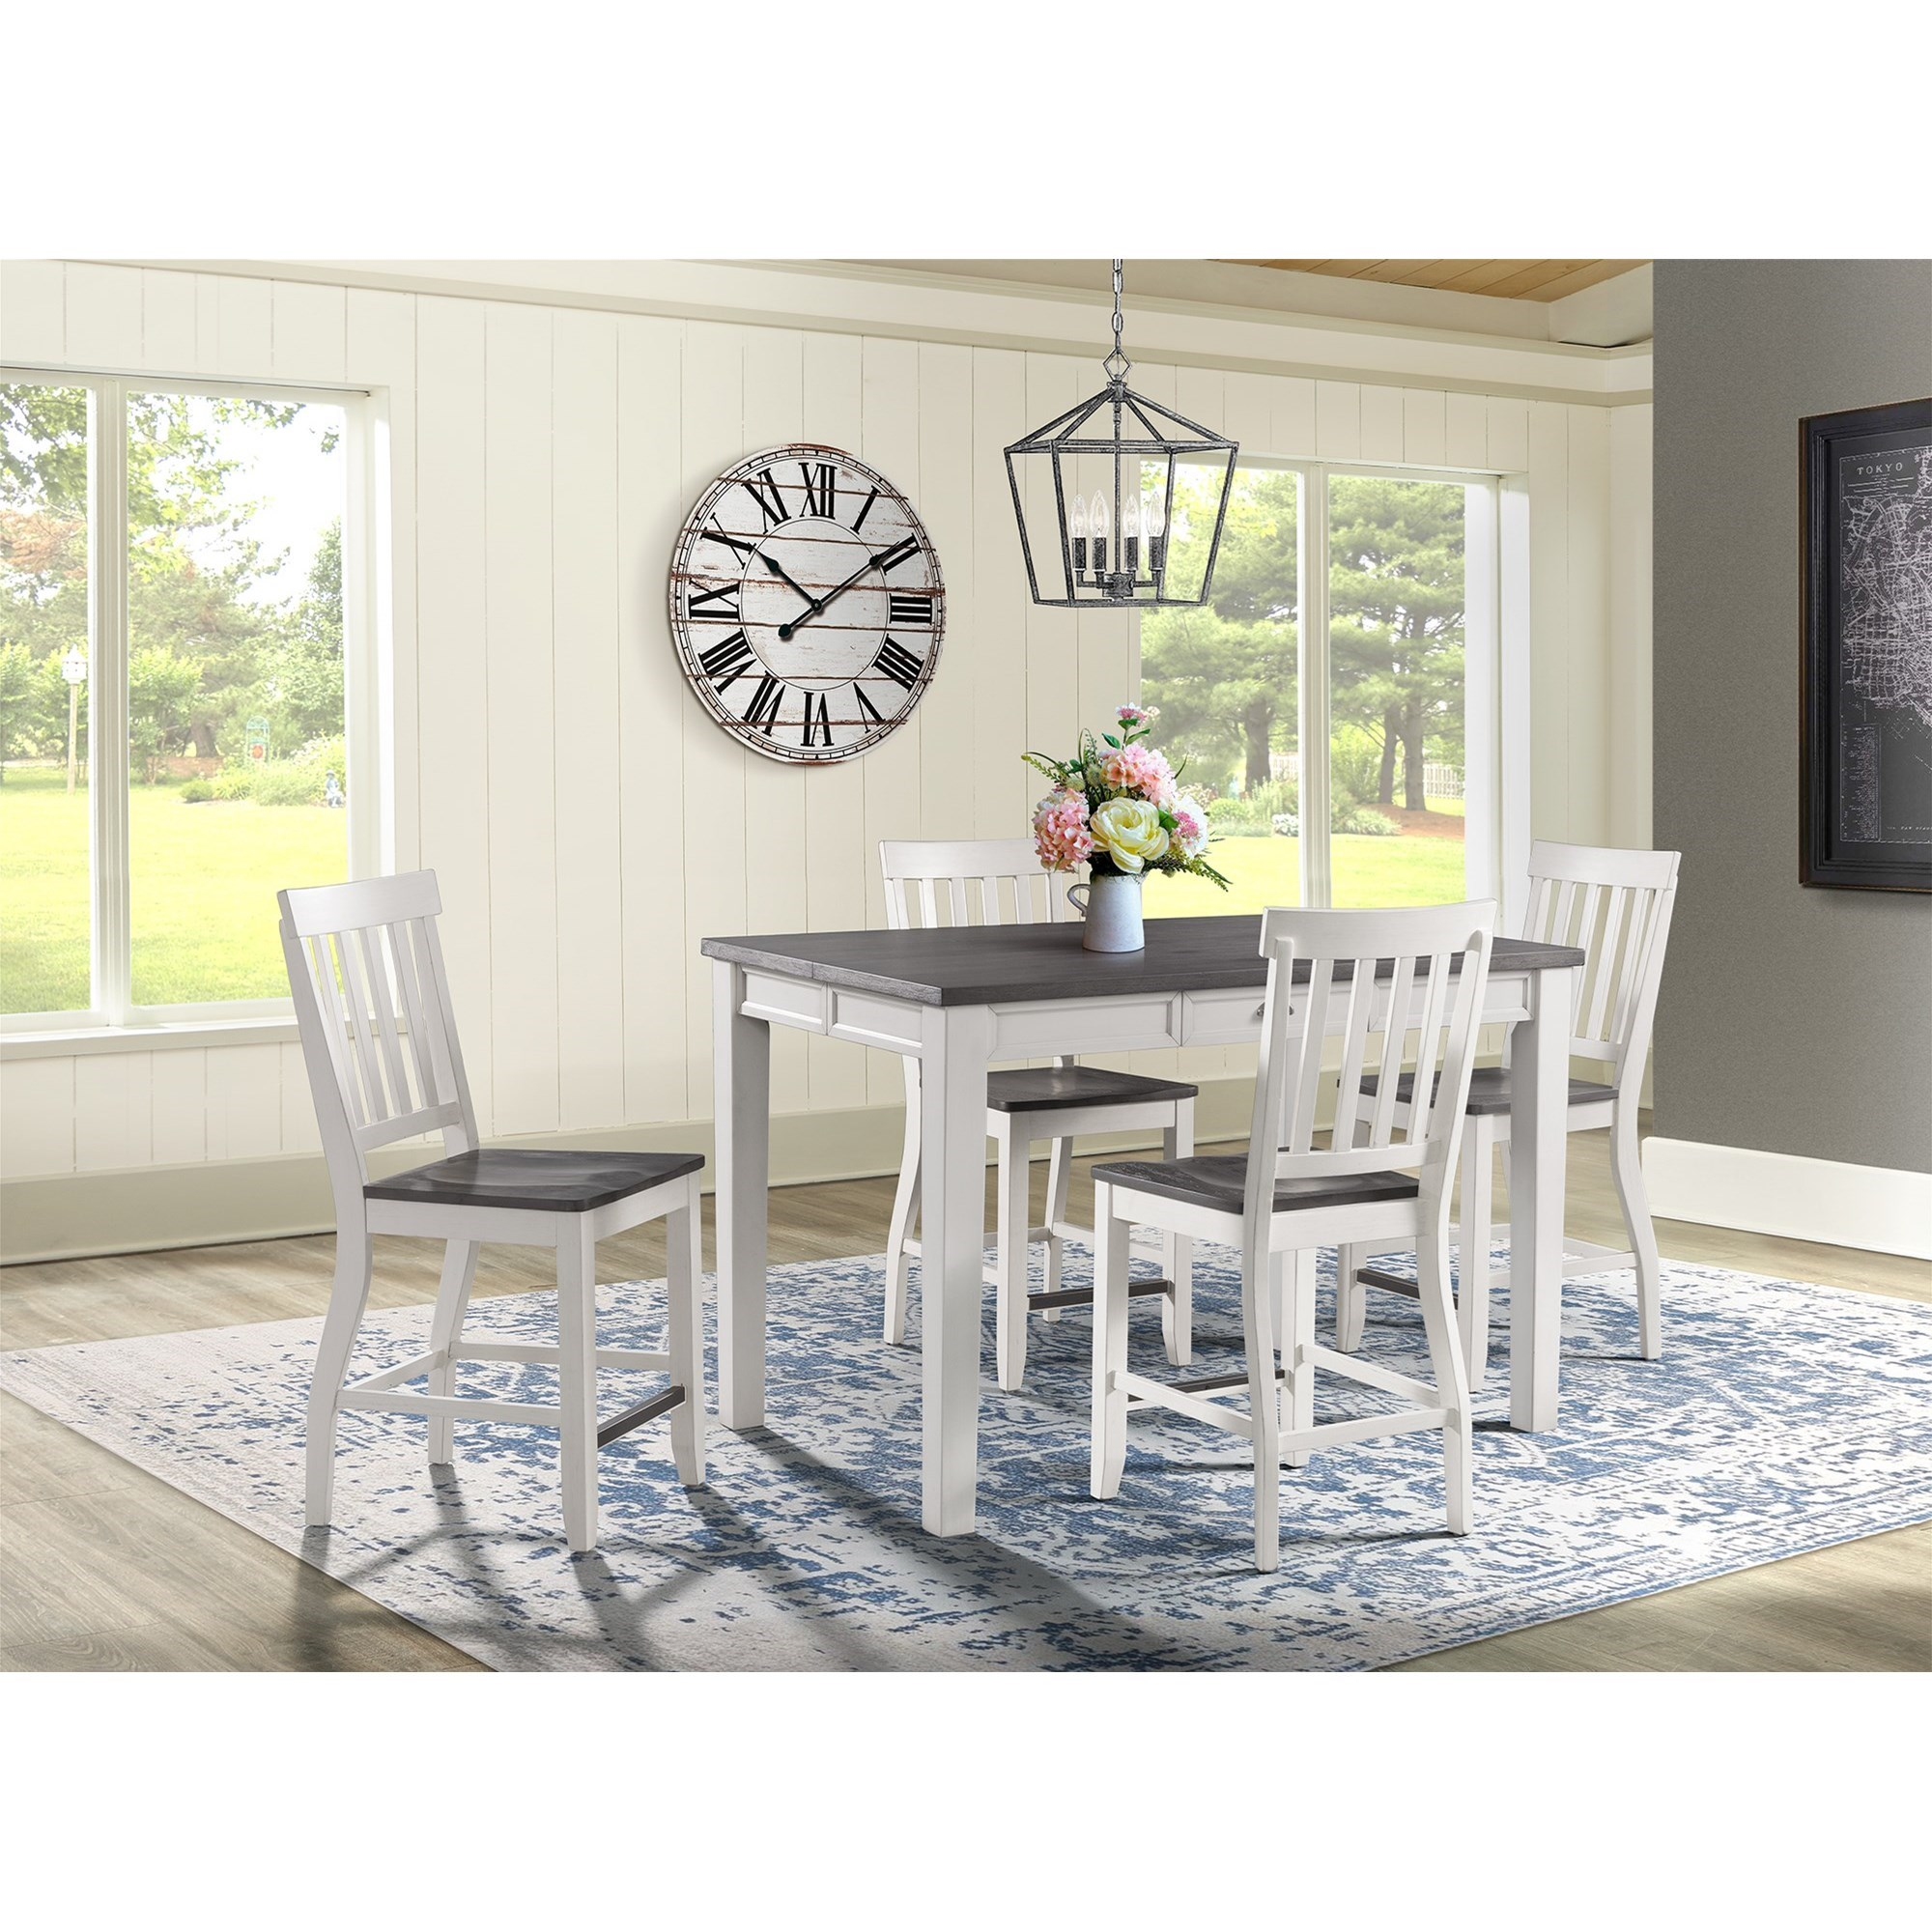 Kayla 5-Piece Counter Height Dining Set by Elements International at Johnny Janosik